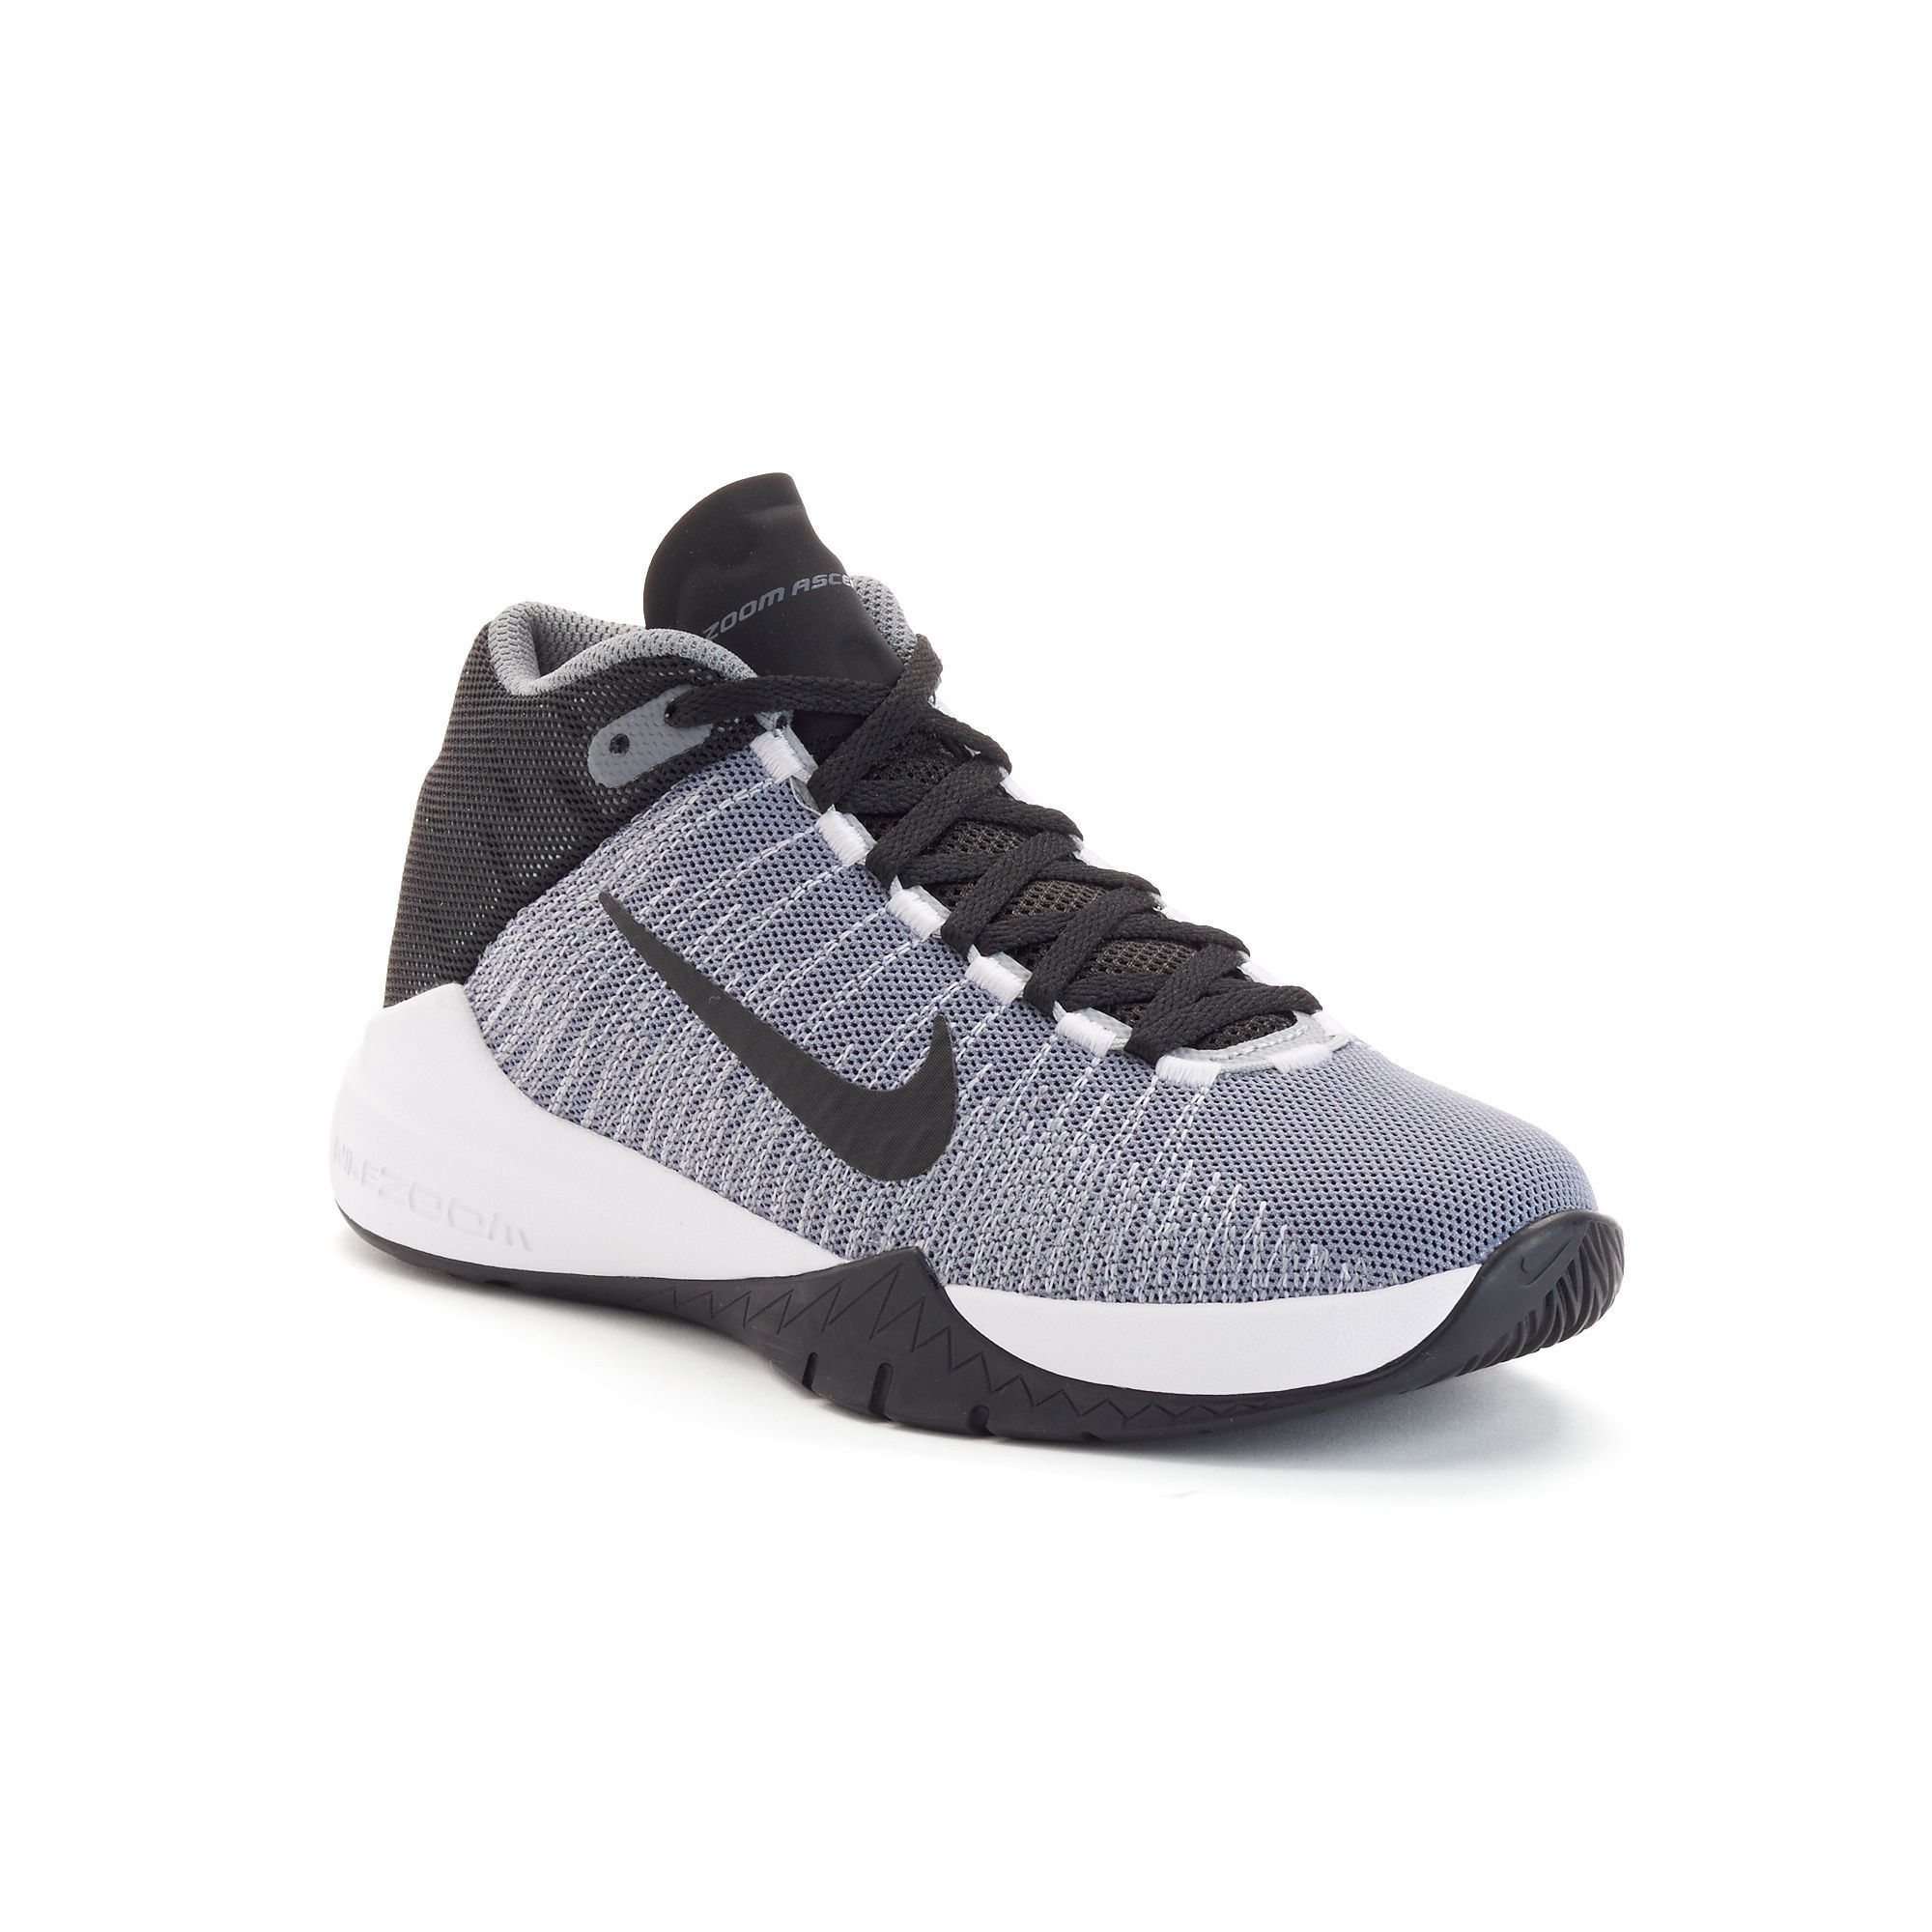 hot sale online 5c451 96560 ... coupon code for boys size 5 nike basketball sneakers 1bd0d 32d52